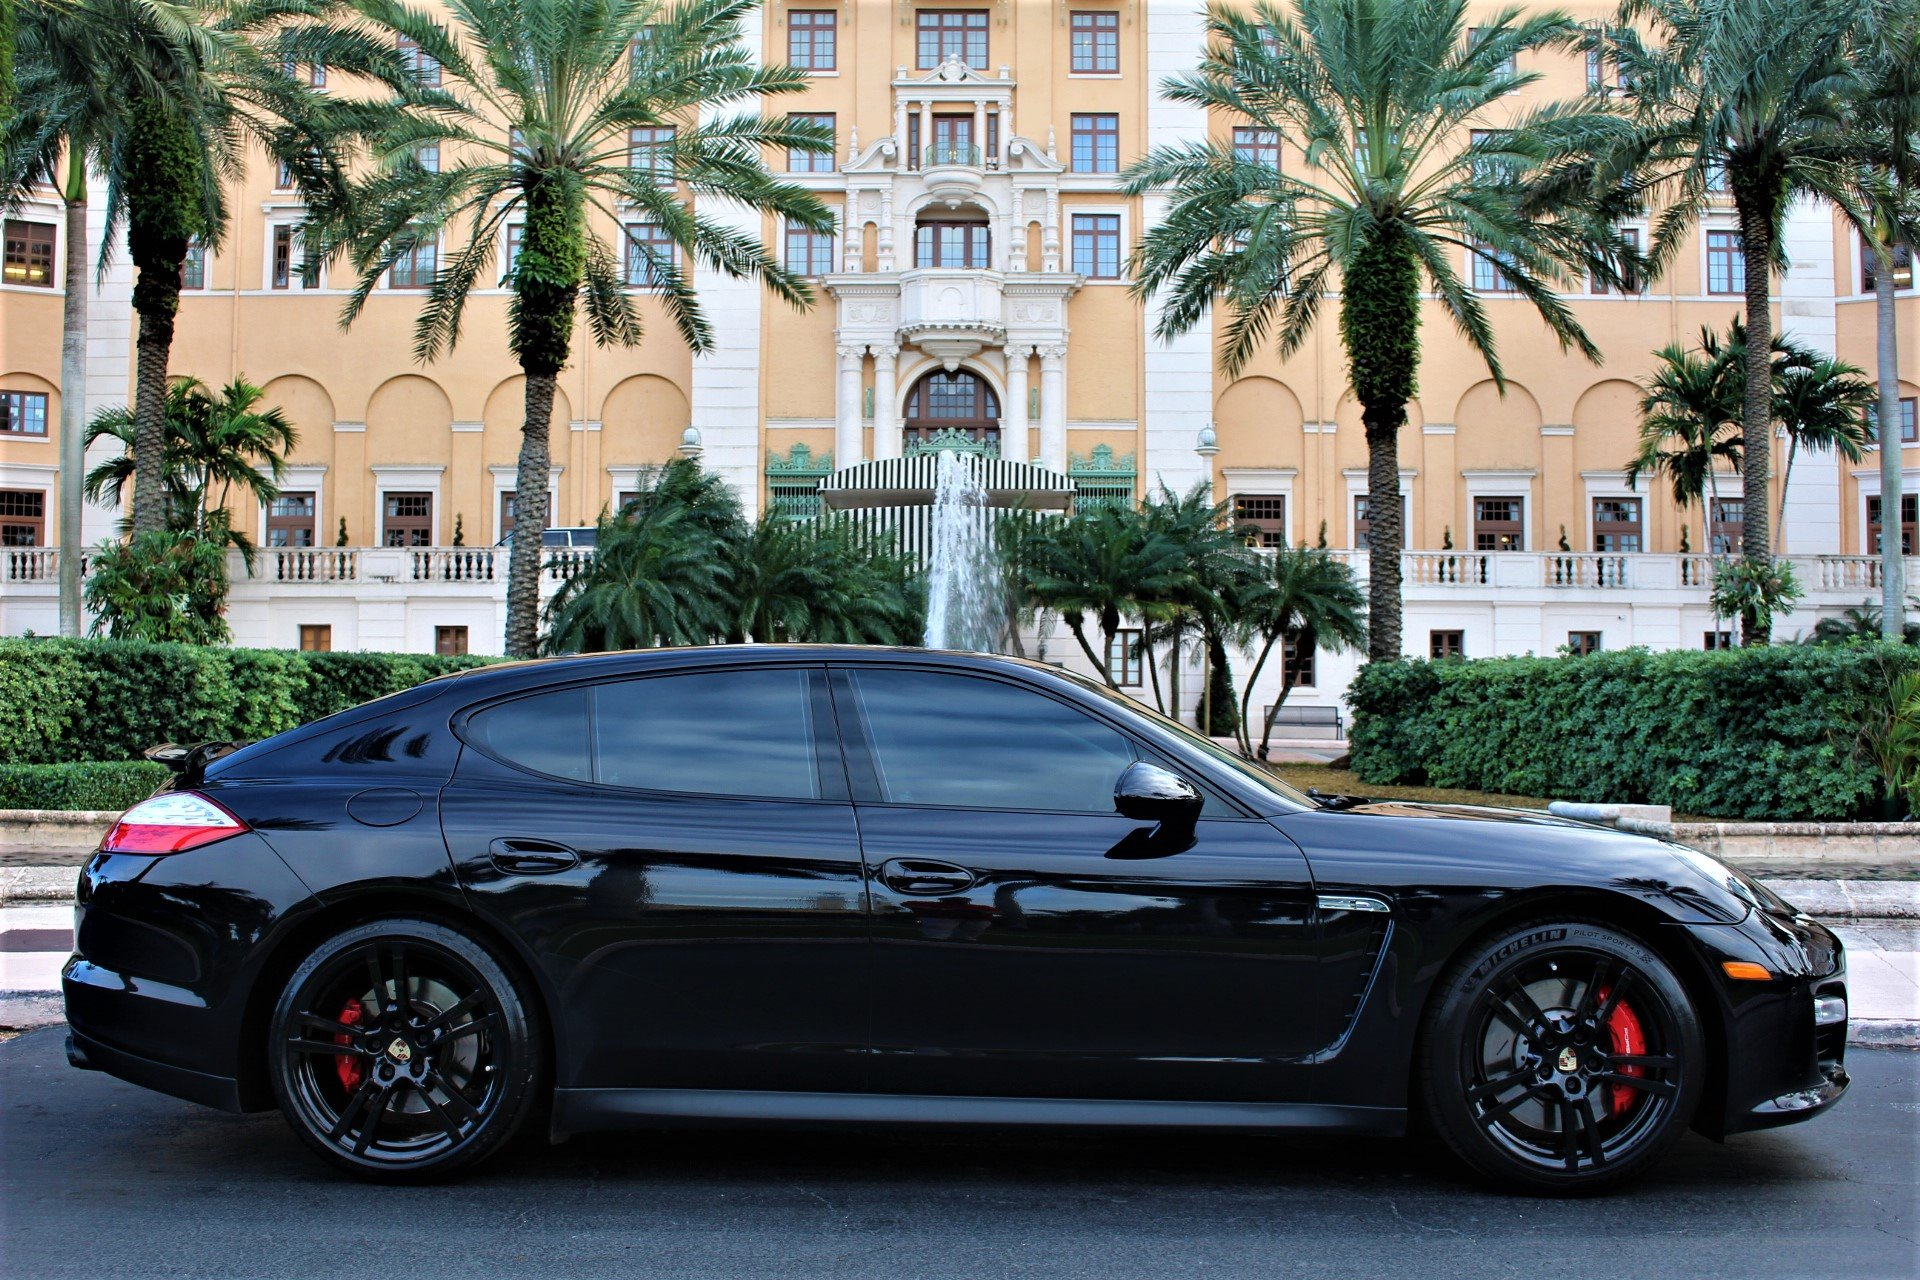 Used 2013 Porsche Panamera GTS for sale Sold at The Gables Sports Cars in Miami FL 33146 1